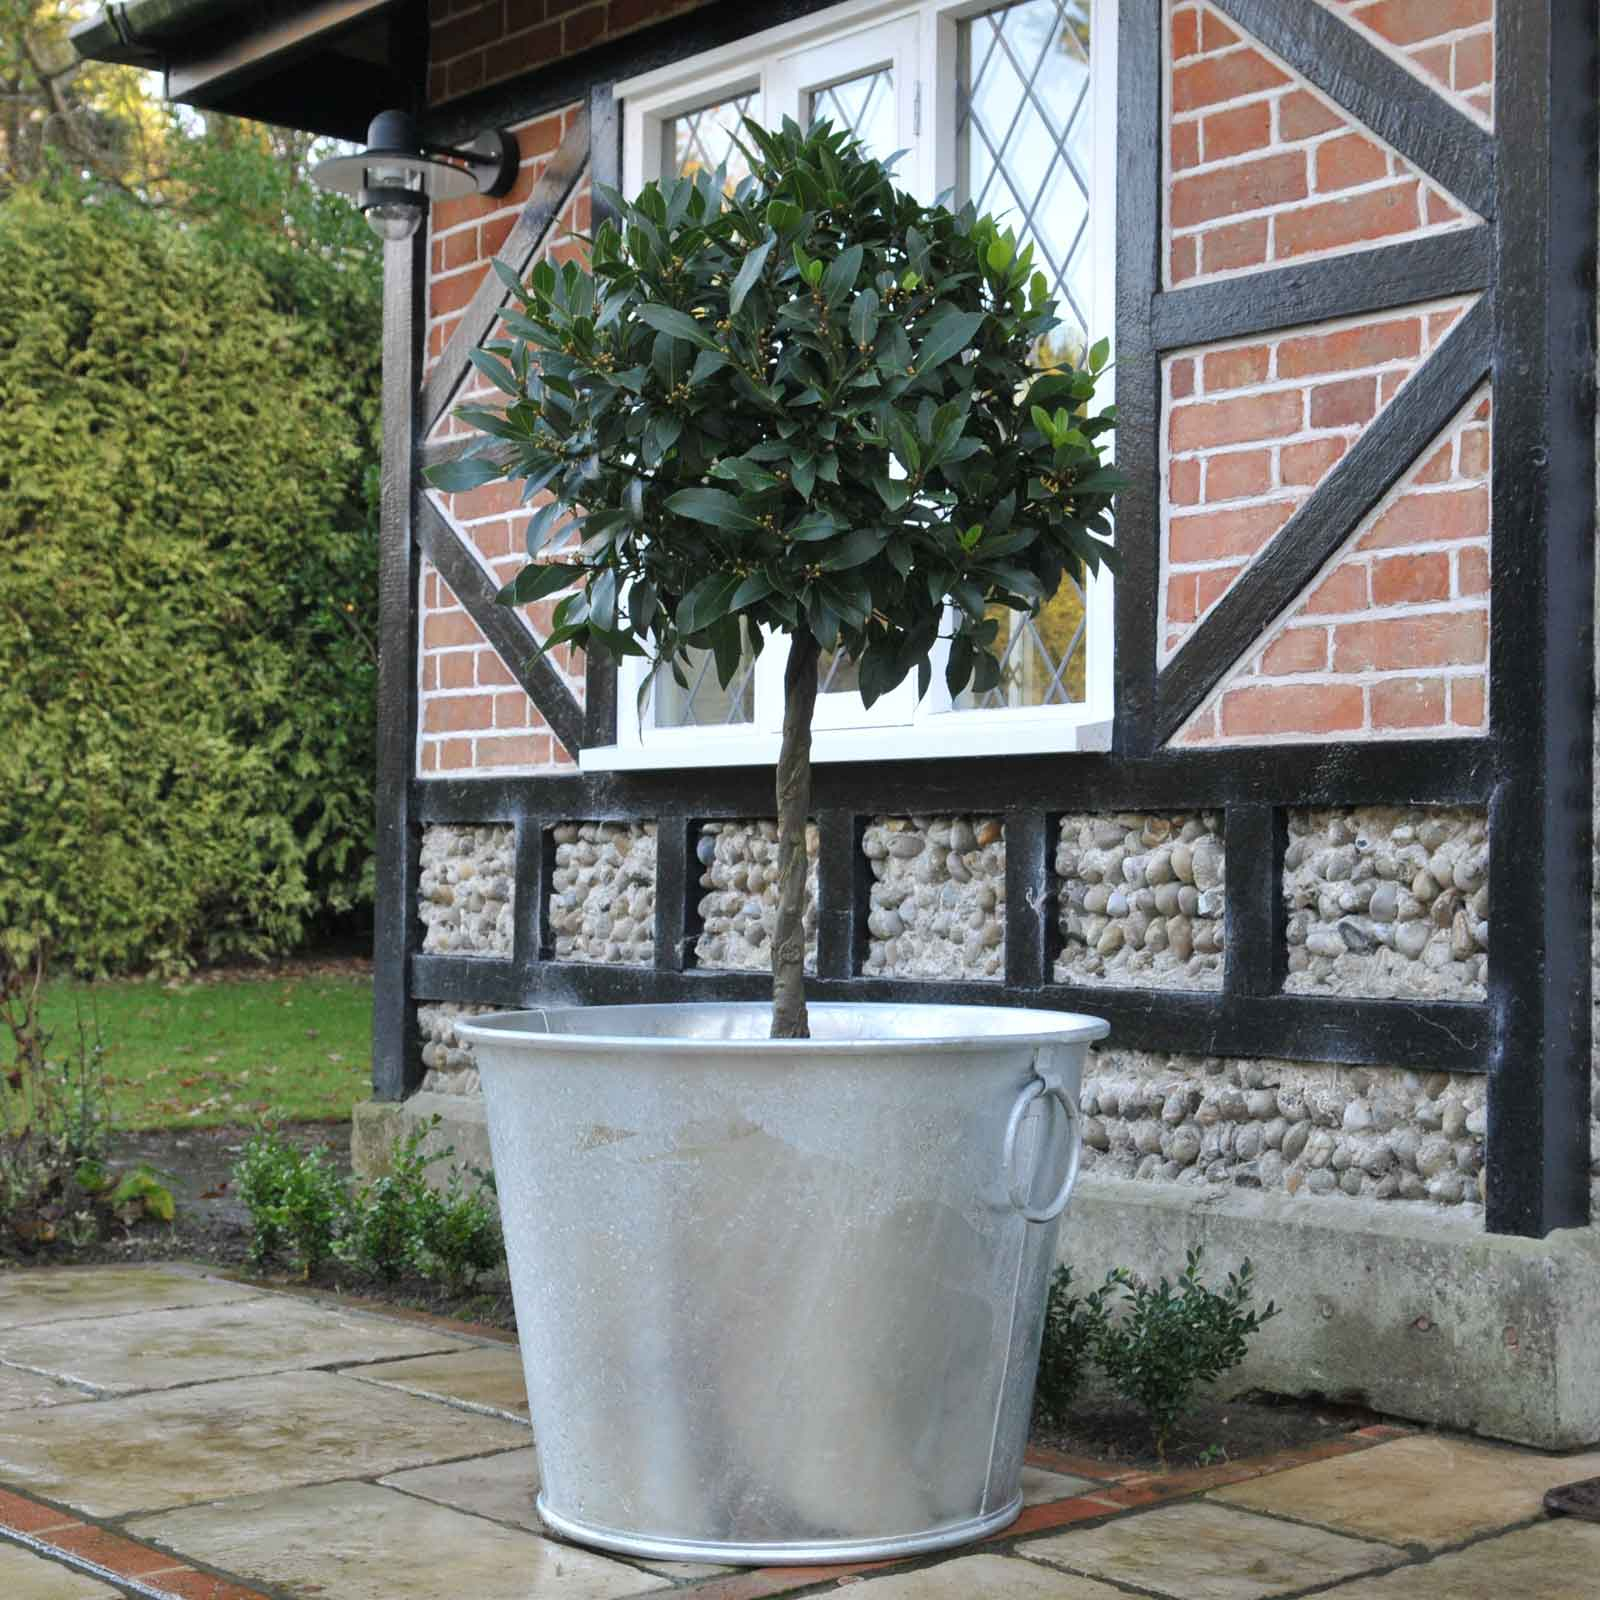 Galvanised Zinc Planters - Garden Supplies at Harrod ... on zinc planter boackround on white, zinc garden statues, zinc bowls, zinc furniture, zinc window boxes,